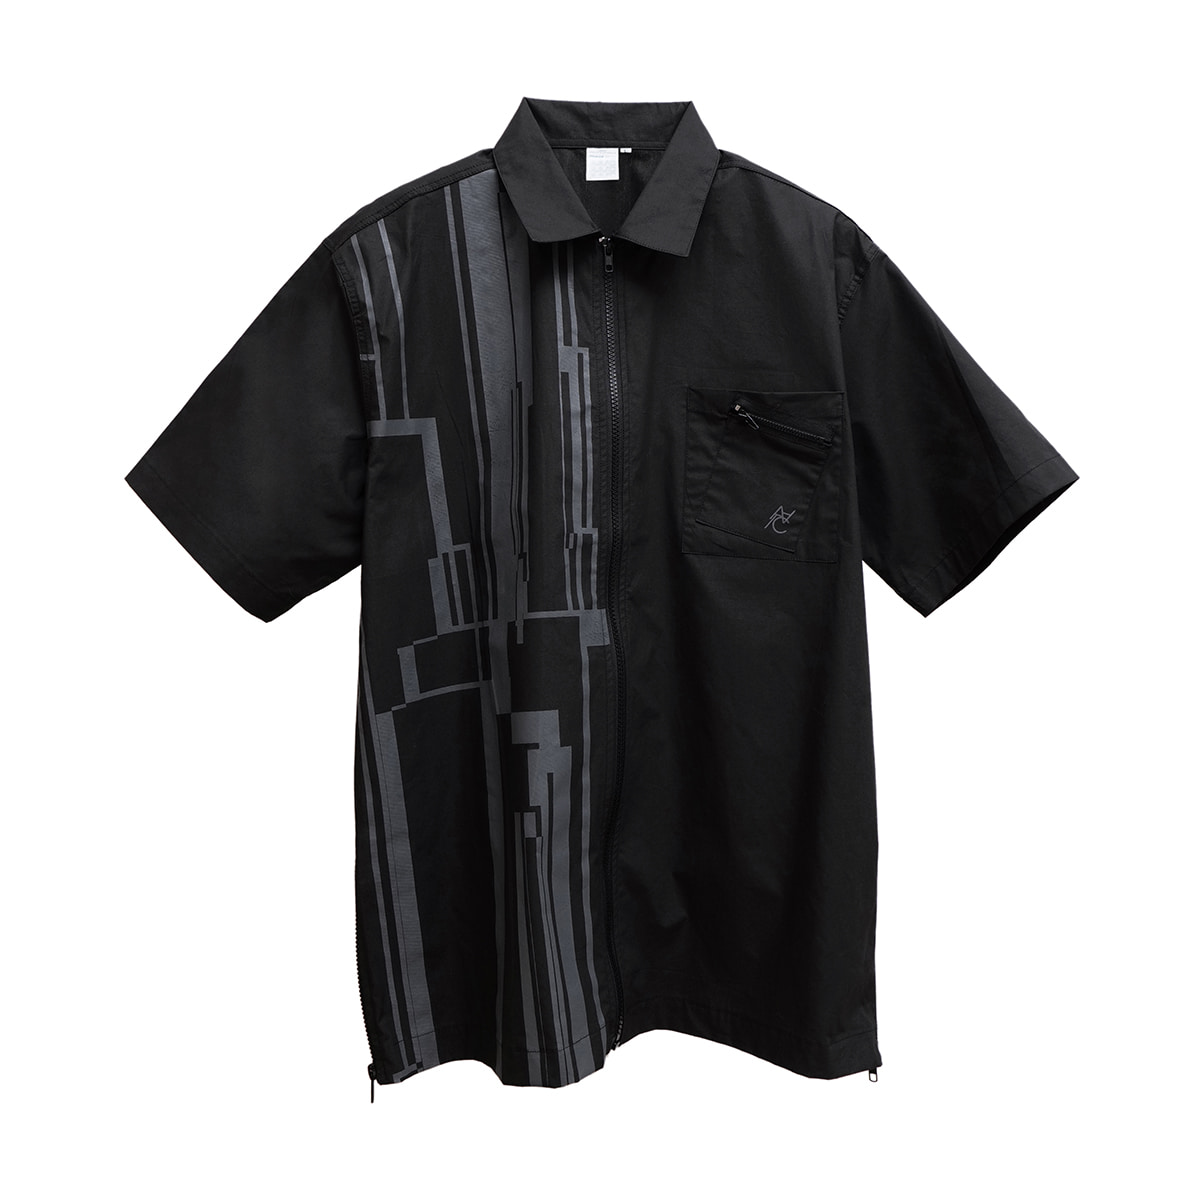 Gotha.2 Zip Shirt (black)